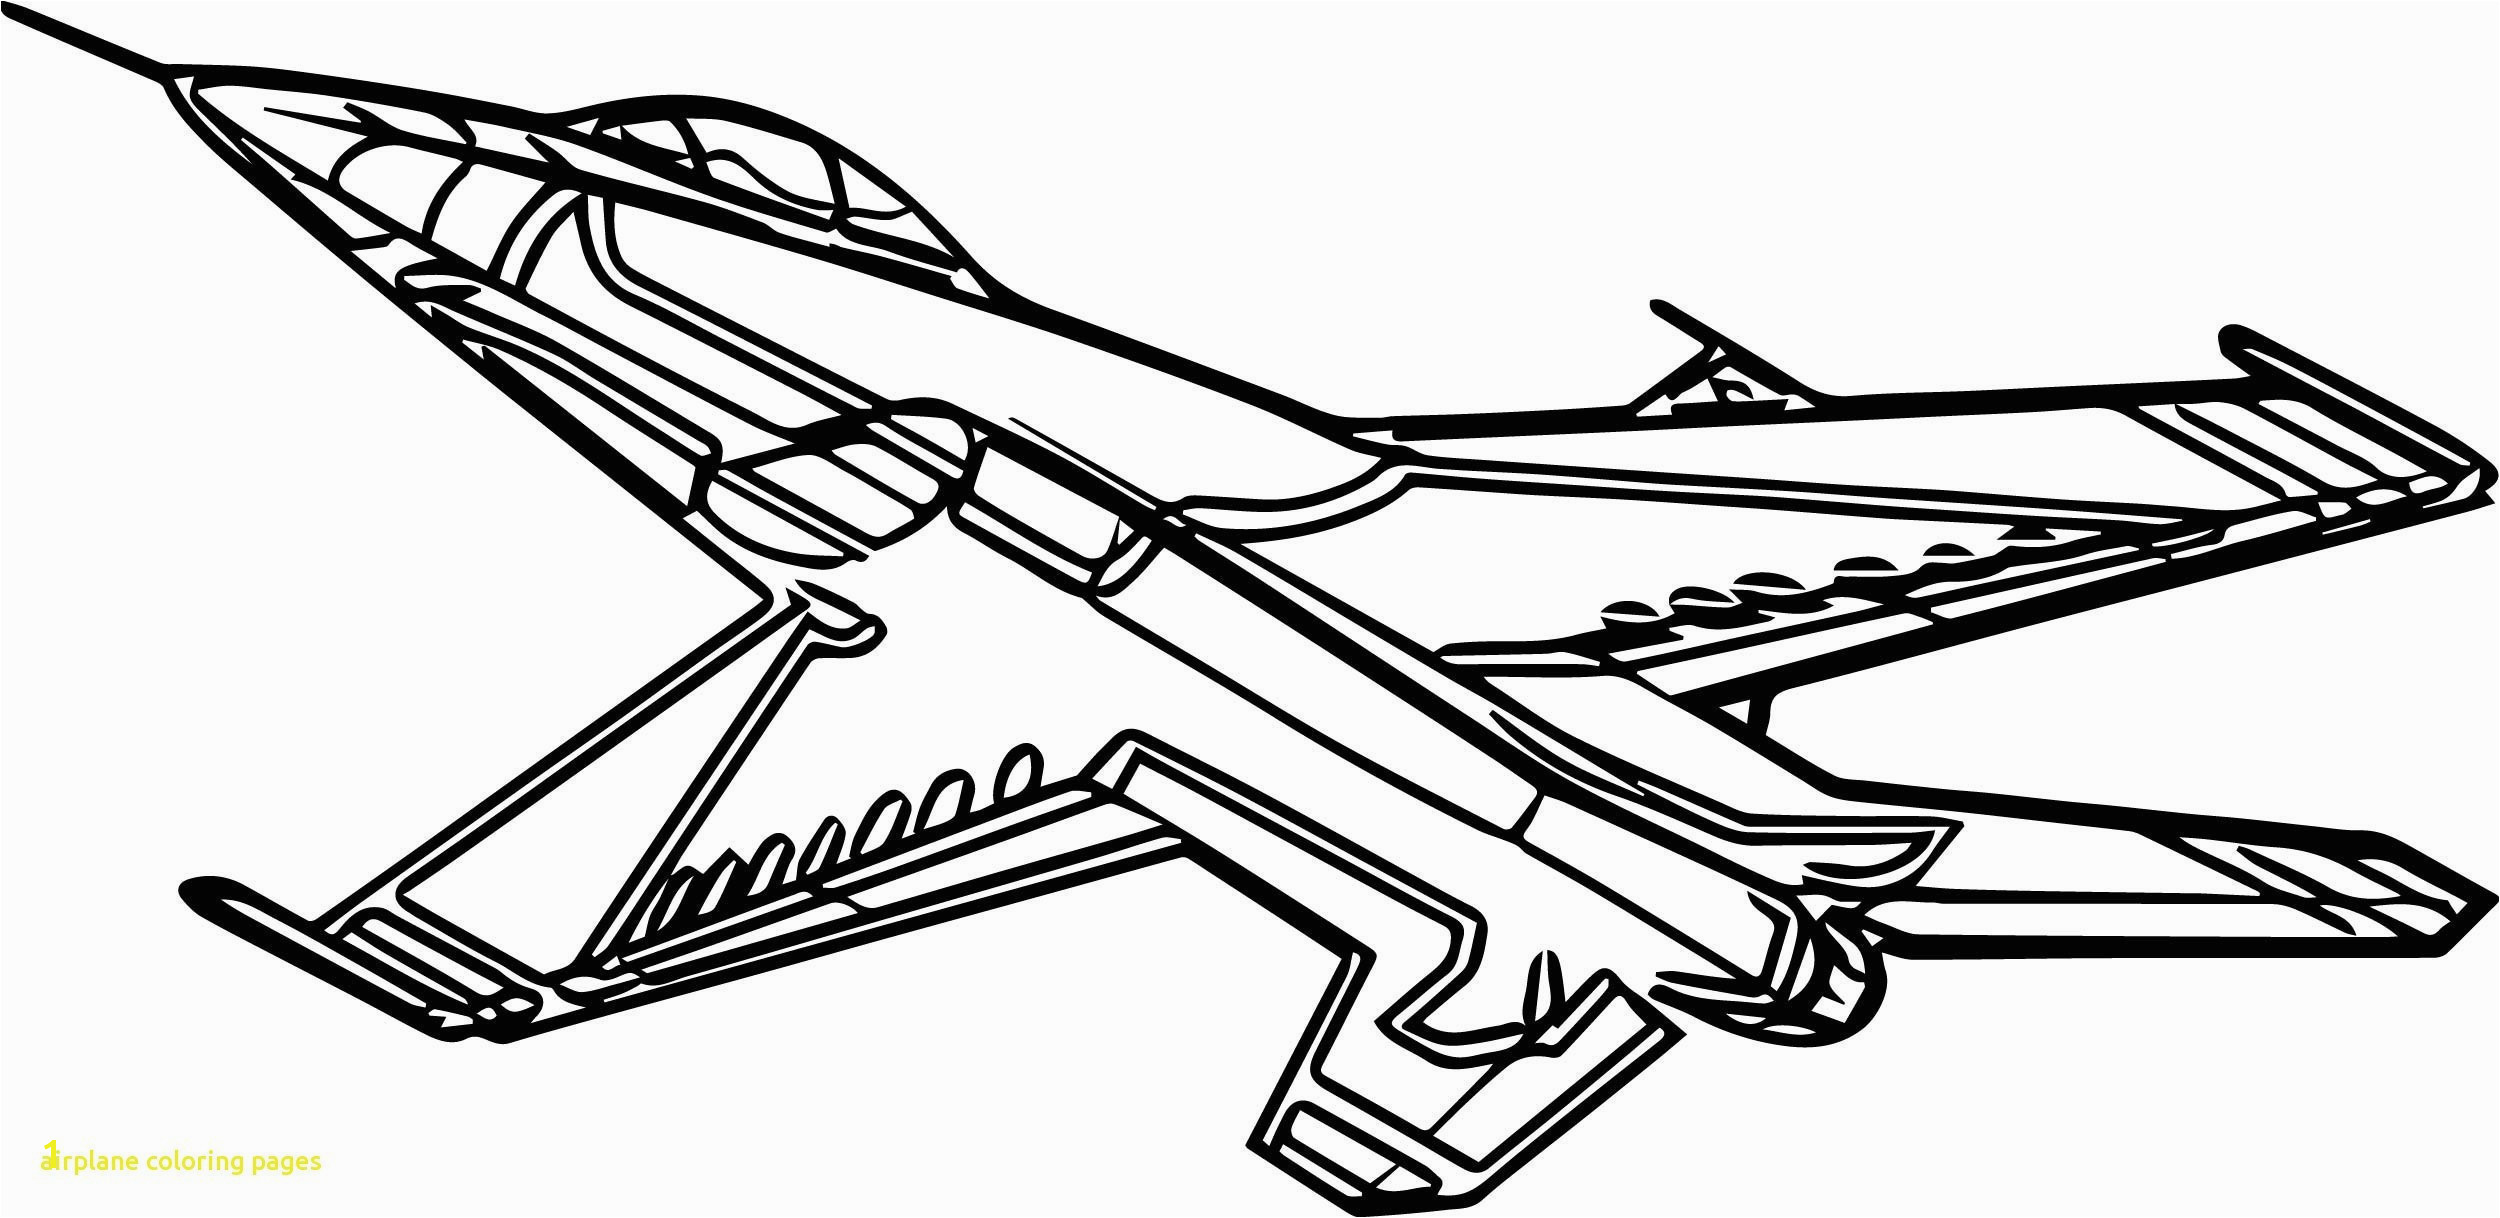 Clipart Airplane Awesome Clipart Airplane New Aeroplanes Colouring Pages Planes Coloring